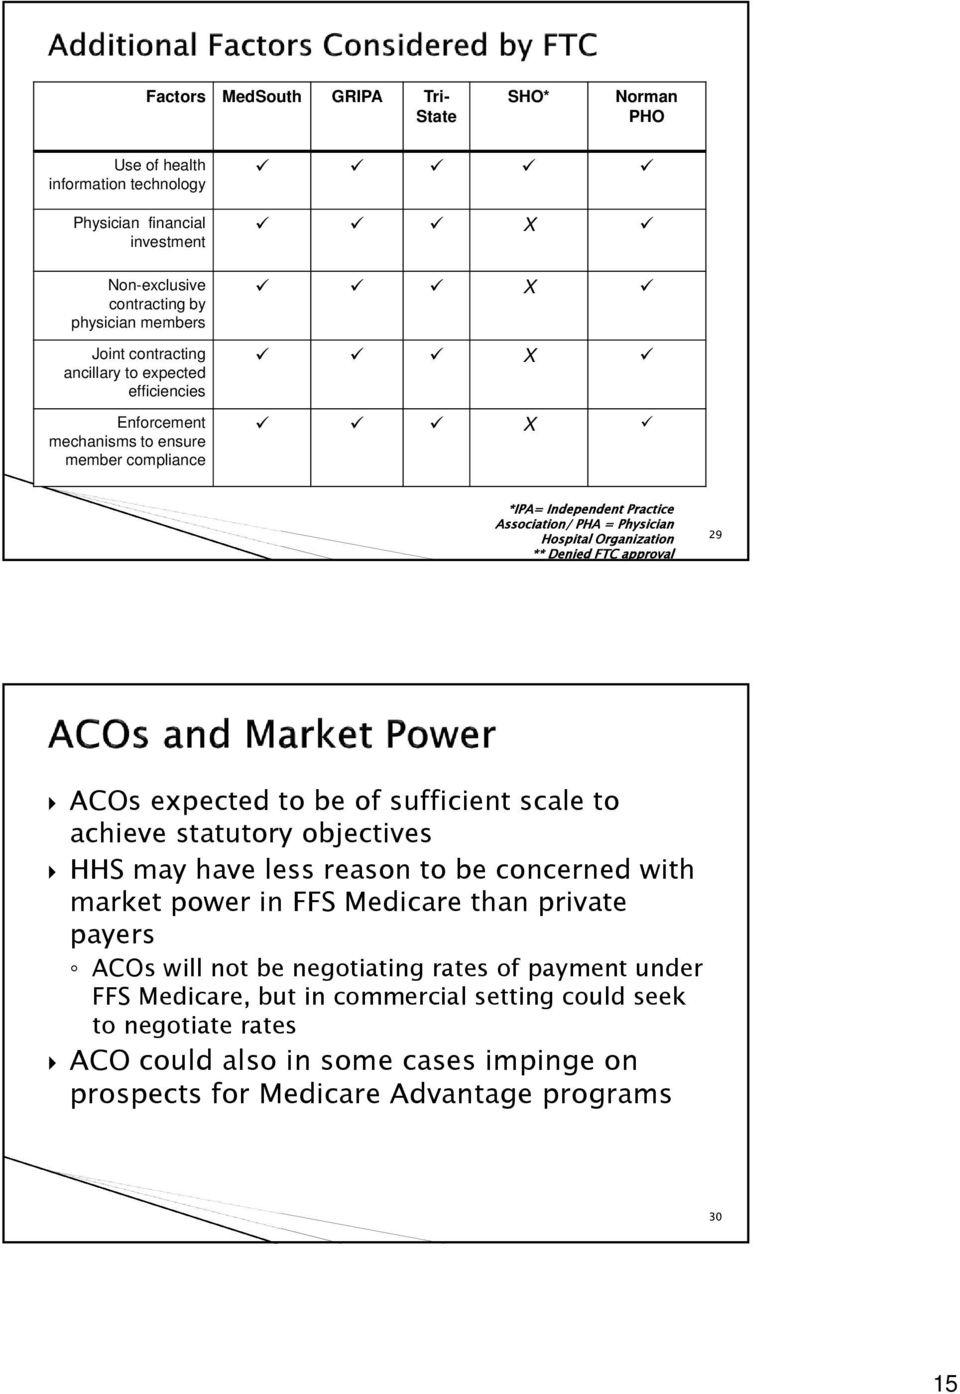 approval 29 ACOs expected to be of sufficient scale to achieve statutory objectives HHS may have less reason to be concerned with market power in FFS Medicare than private payers ACOs will